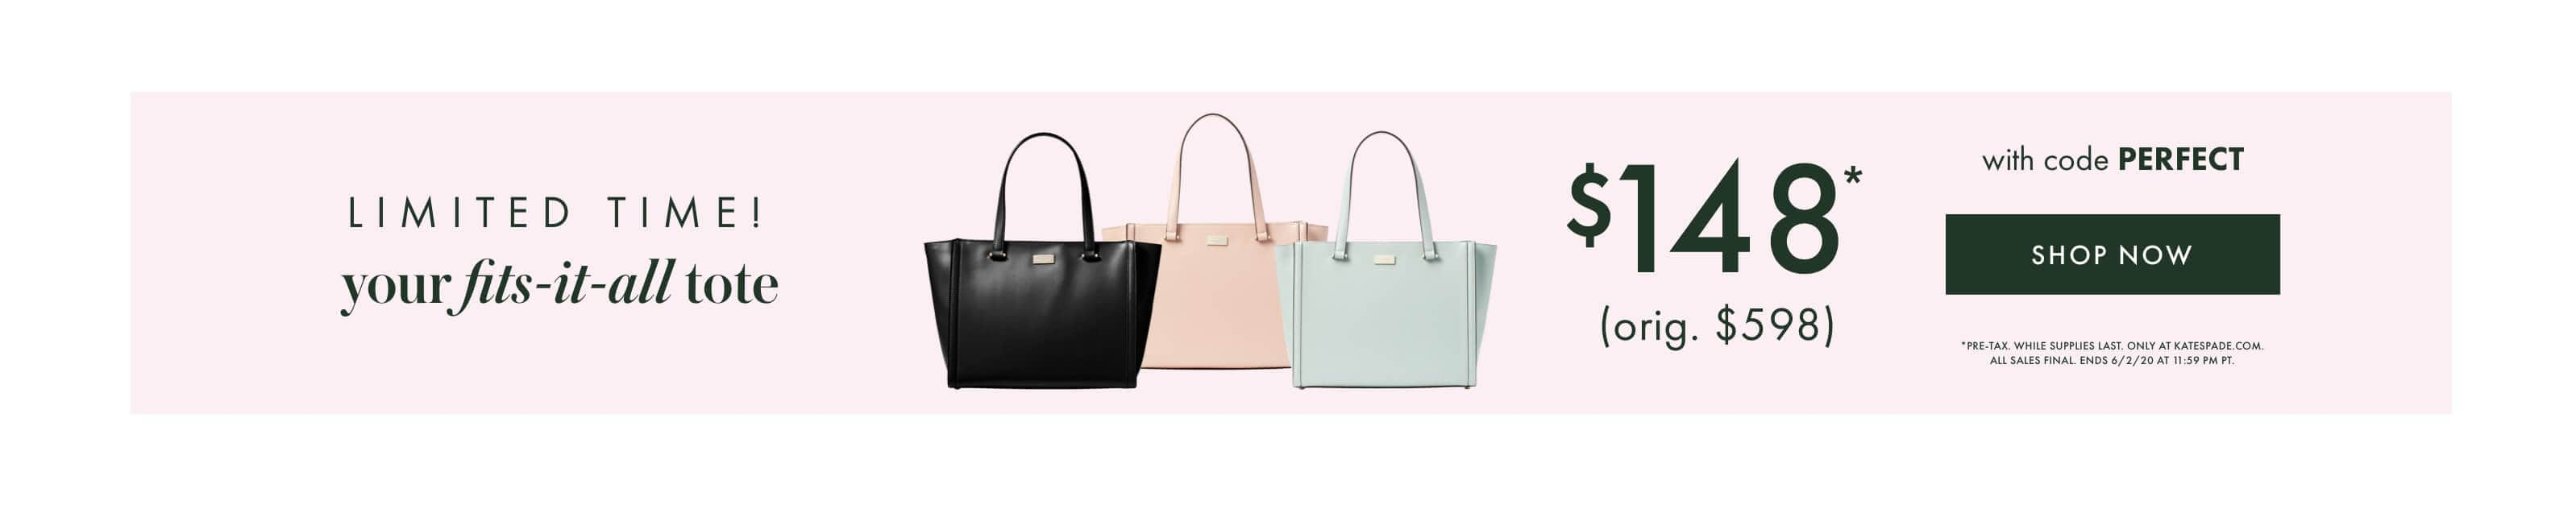 limited time! your fits-it-all tote. $148* (orig. $598) with code PERFECT. Shop now. *pre-tax. while supplies last. only at katespade.com.              all sales final. ends 6/2/20 at 11:59 pm pt.